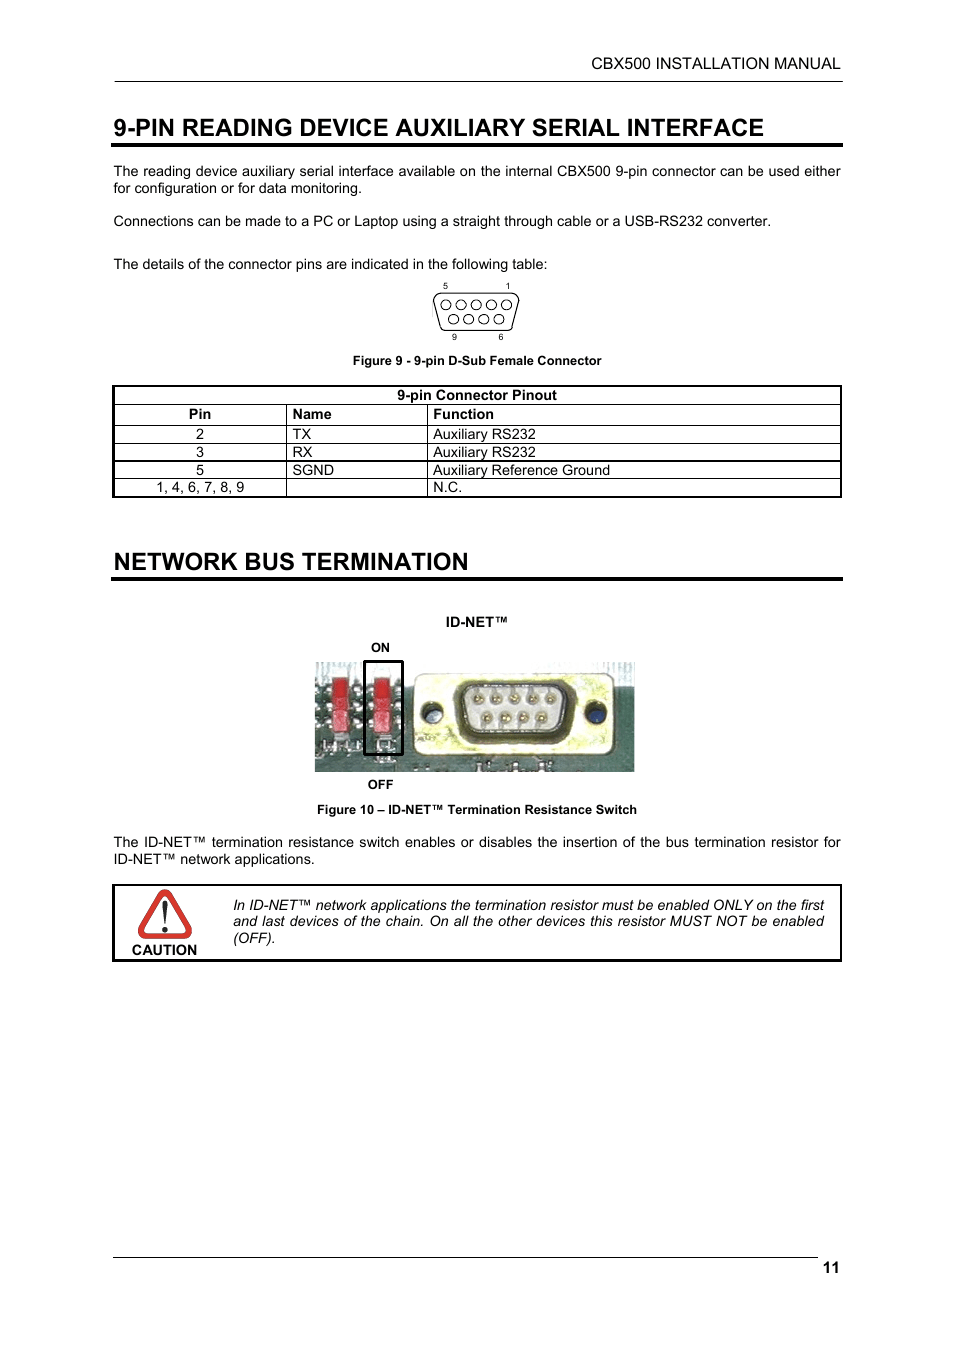 hight resolution of pin reading device auxiliary serial interface network bus termination datalogic scanning cbx500 user manual page 11 15